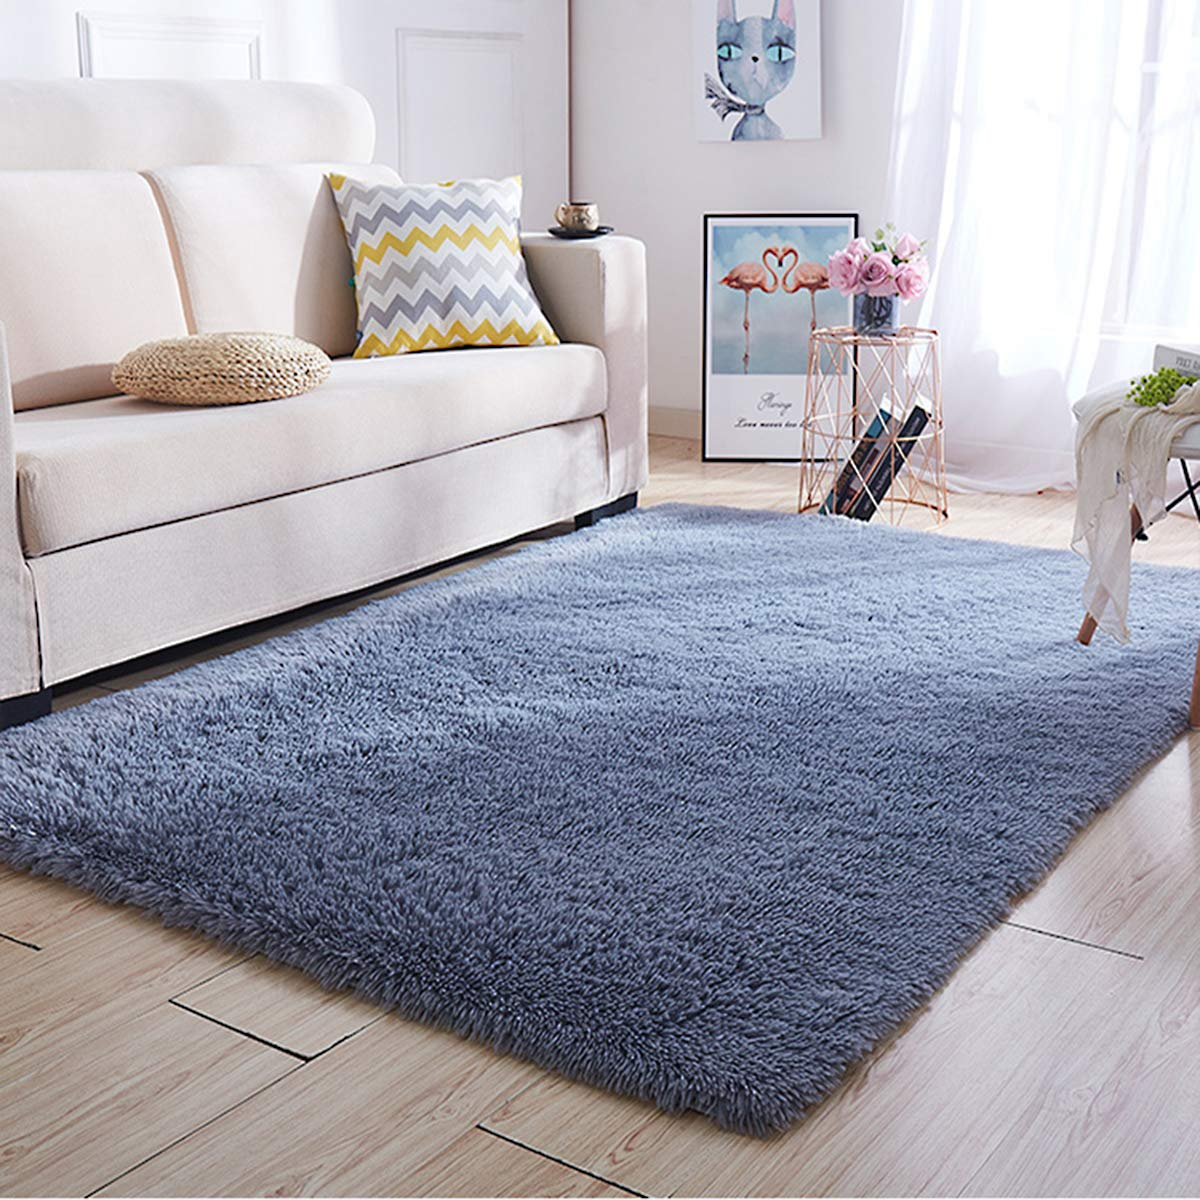 Super Soft Kids Room Nursery Rug 5 x 8 Grey Mordern Indoor Fluffy Area Rugs for Bedroom Living Room Baby Girls Boys Floor Carpets by VaryCarry